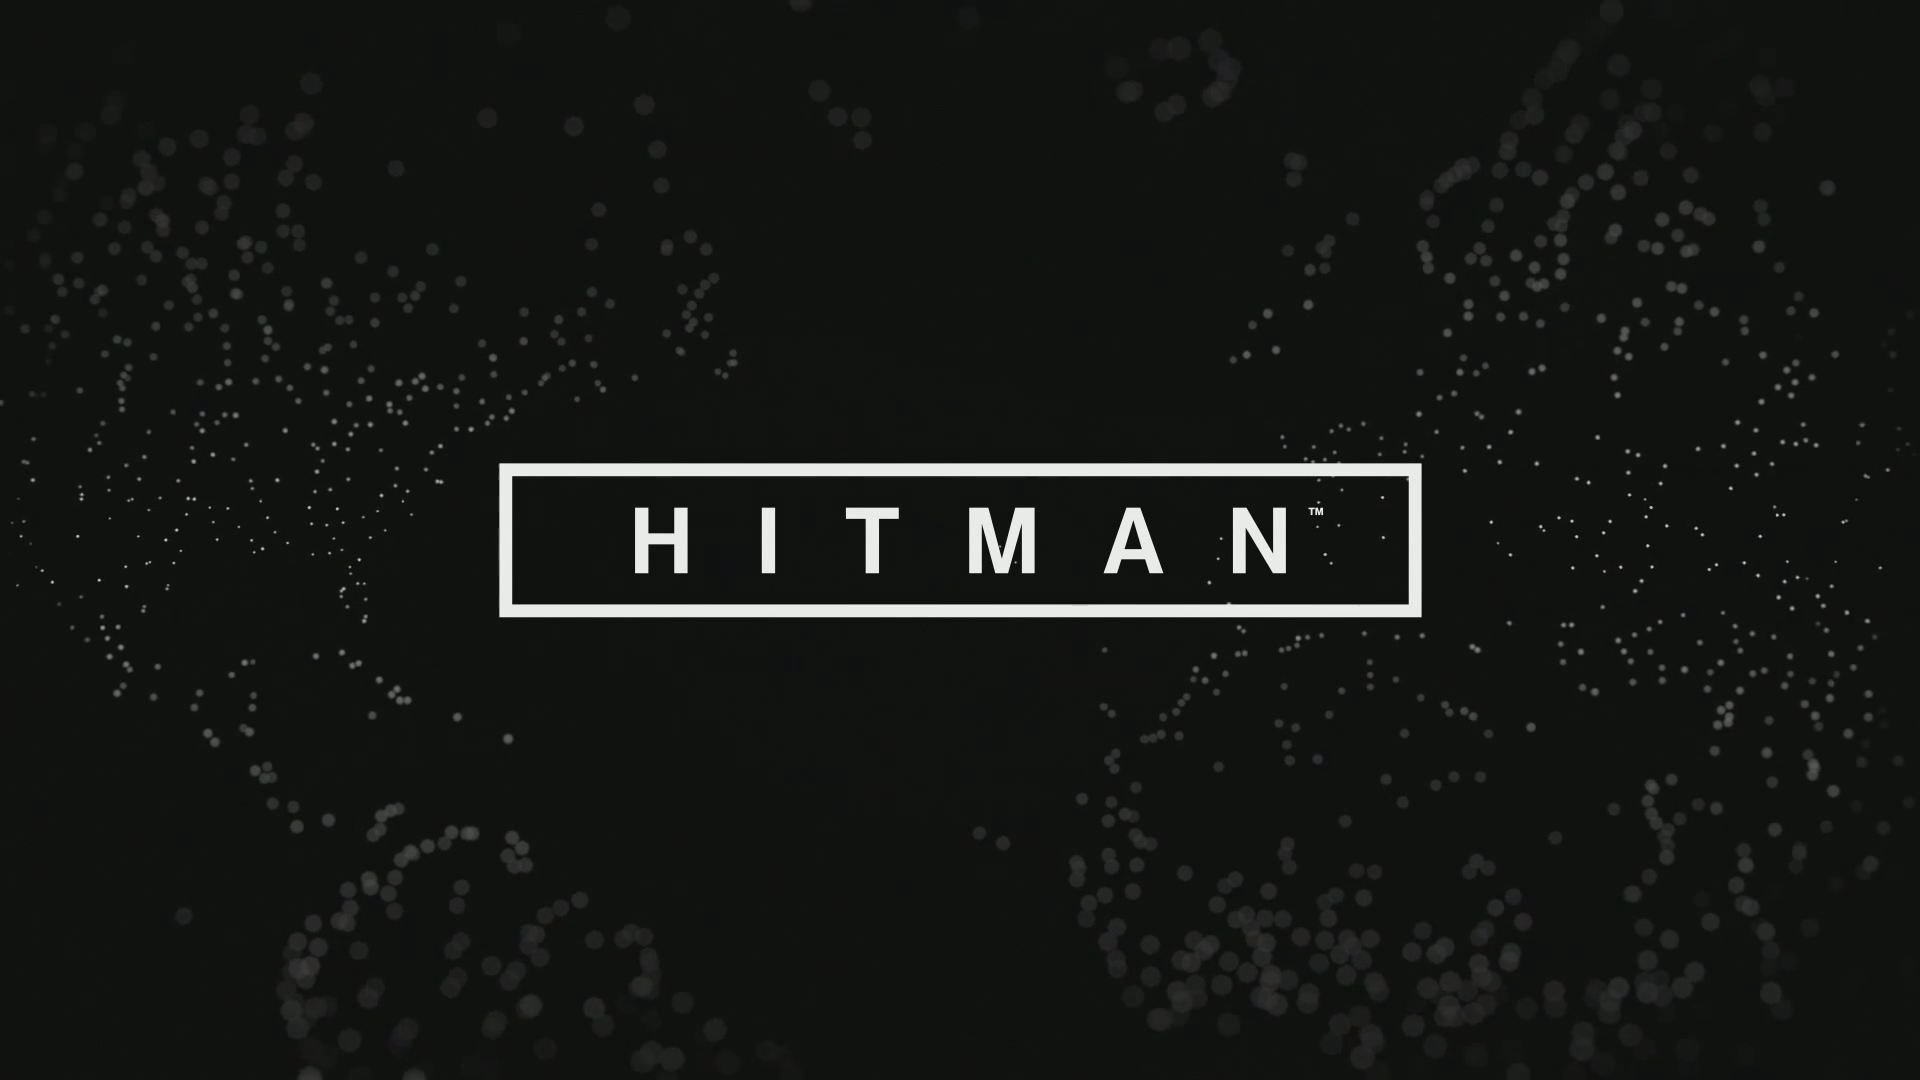 hitman 2016 wallpapers images photos pictures backgrounds